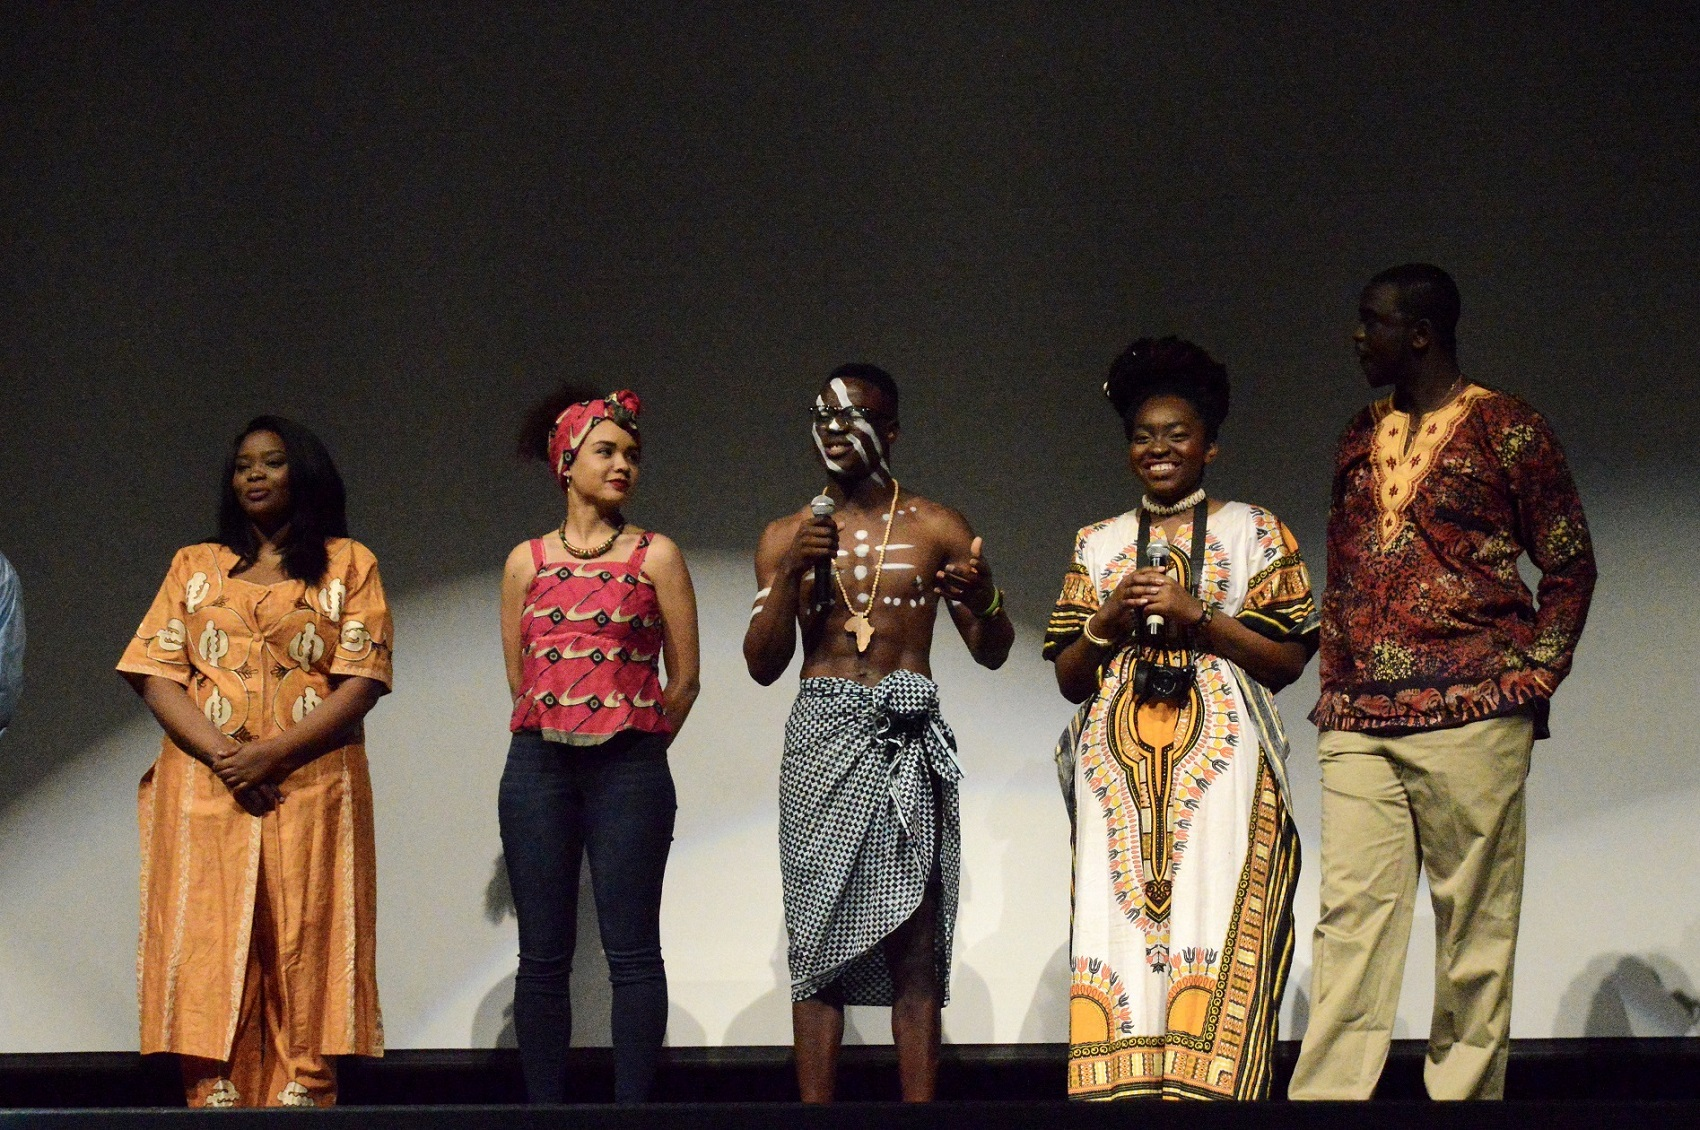 Mr. and Ms. Africa competitors speak at the pageant.